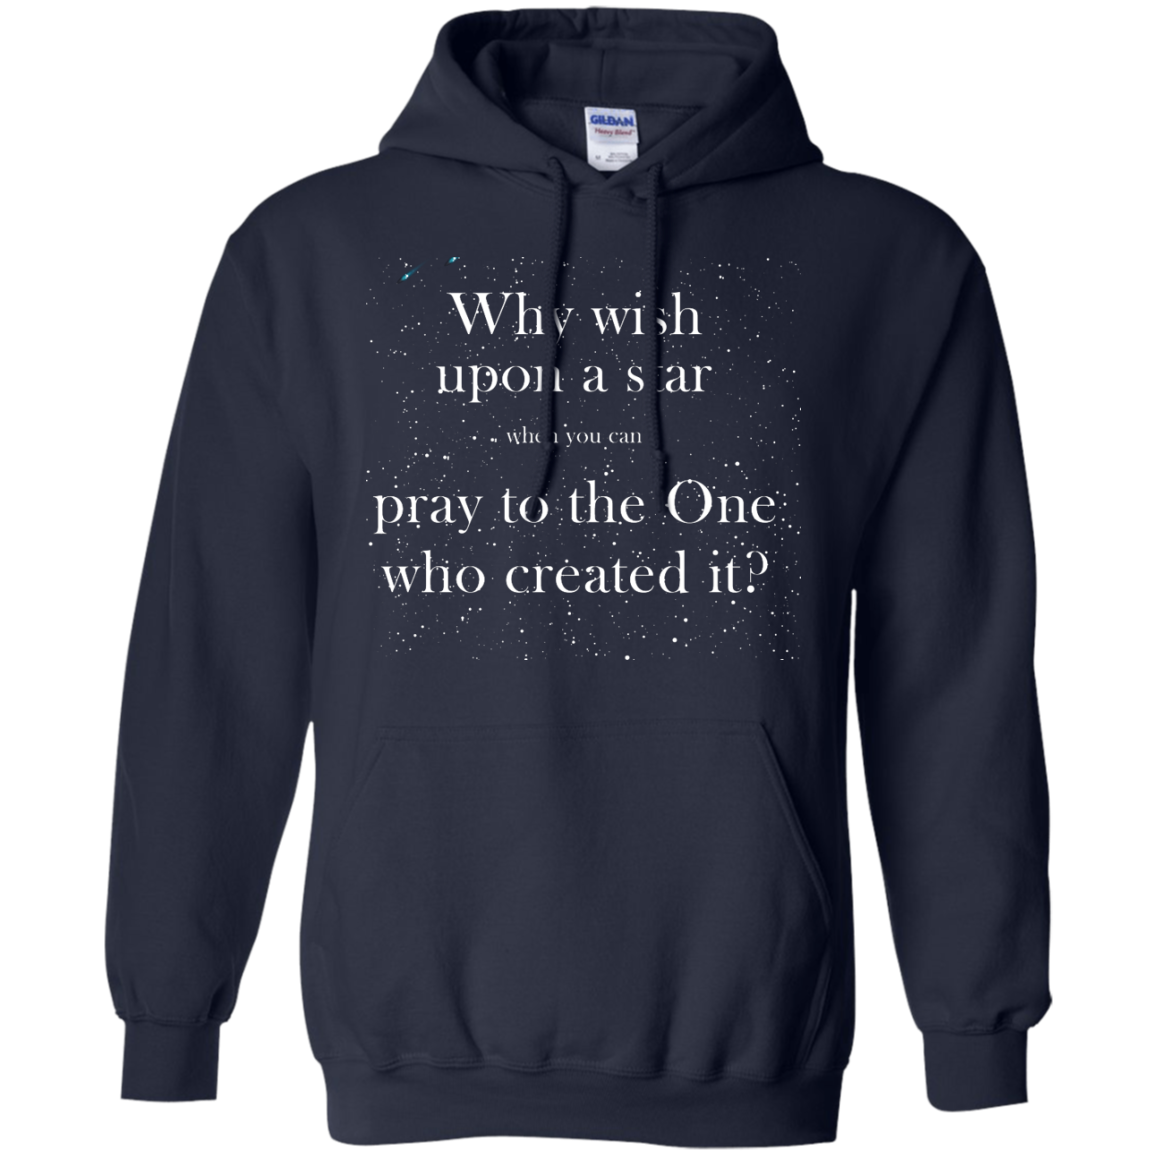 image 351px Why wish upon a star pray to the One who created it t shirts, hoodies